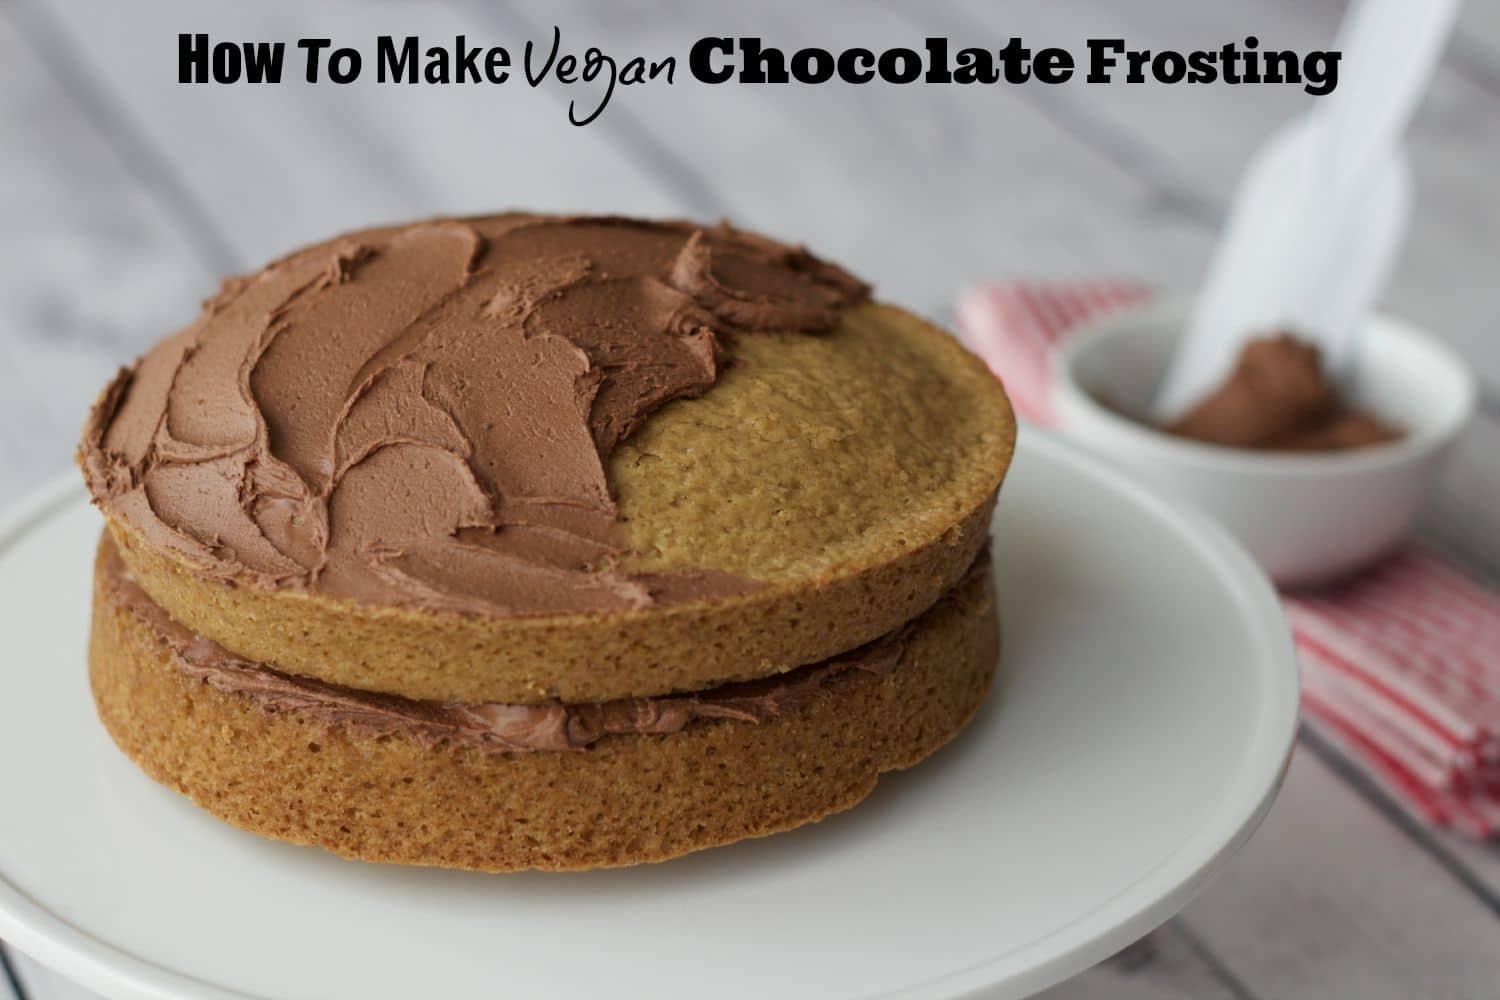 Easy step by step guide to making this frosting recipe in minutes! #vegan #gluten-free #dairy-free #chocolate #frosting